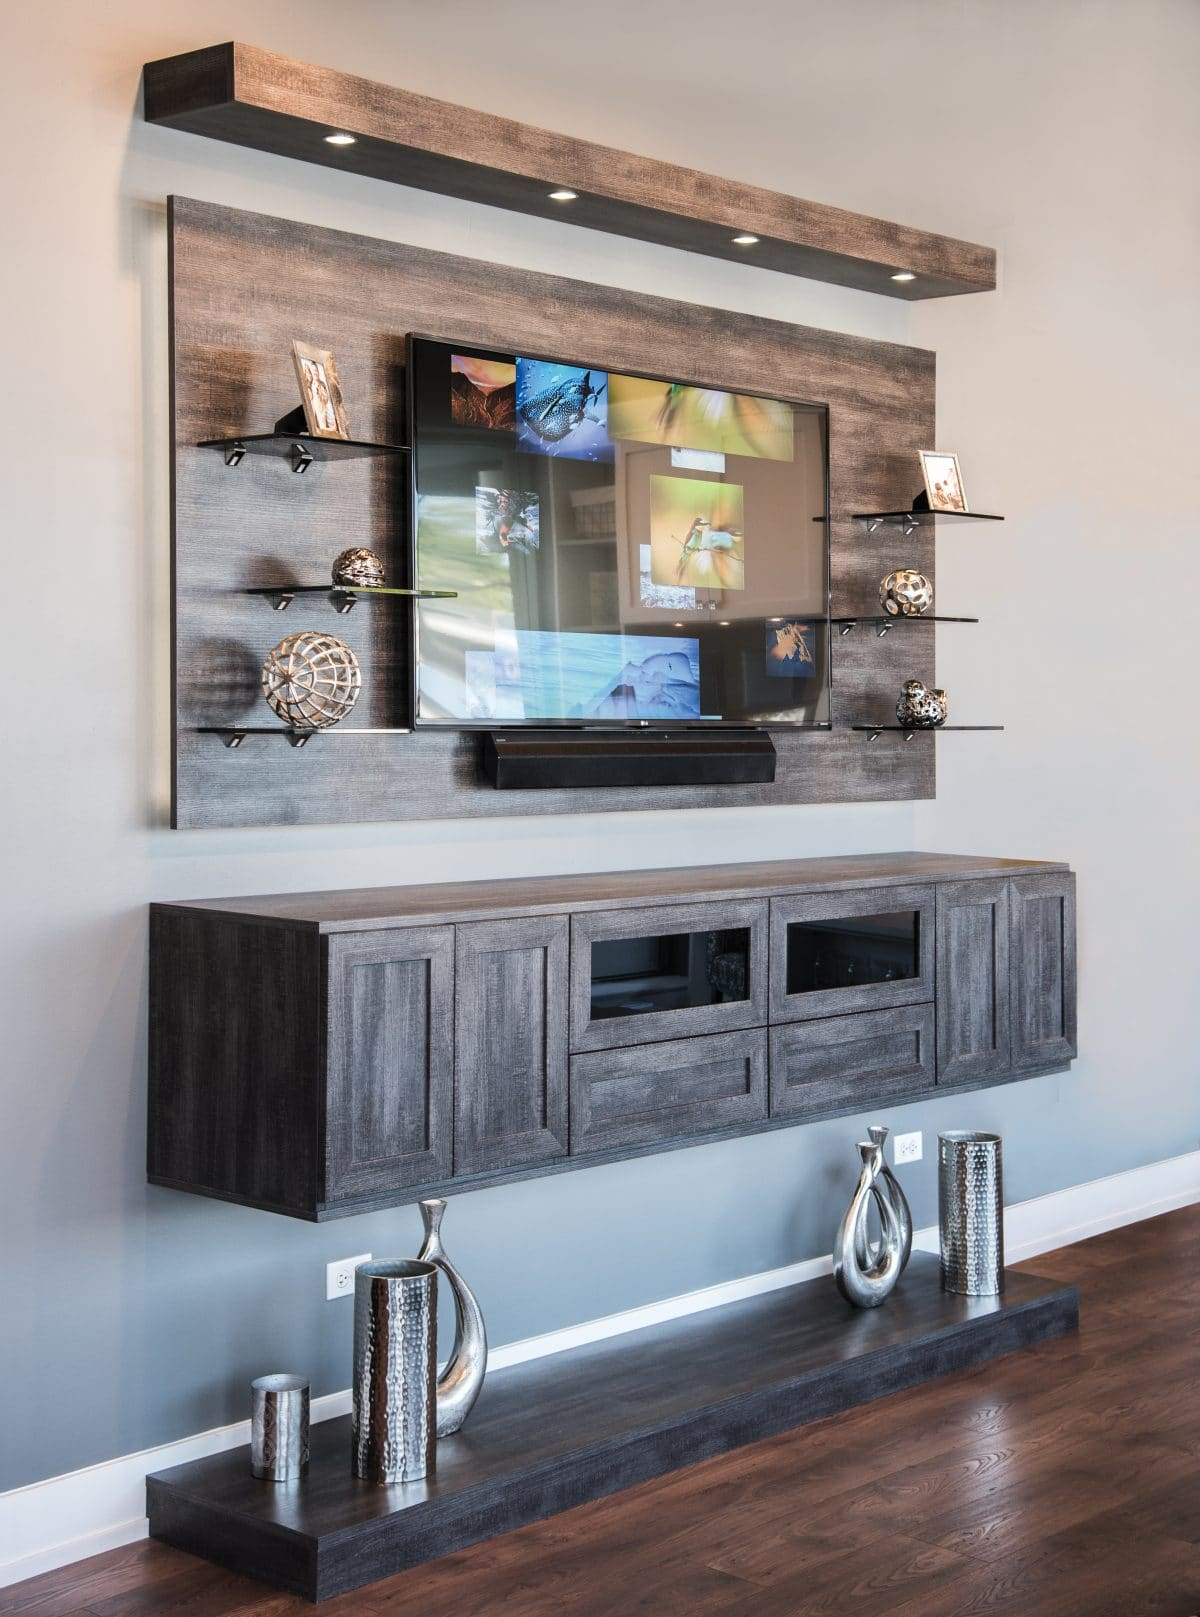 custom entertainment centers floating river rock media center glass shelves for iron and wood bookcase diy storage ideas small spaces shelf spacing bookshelf display ture frames